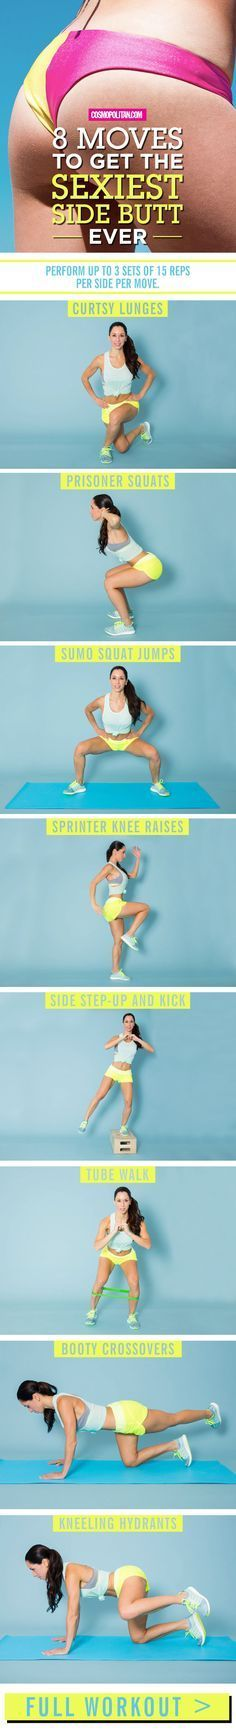 If you want the *perfect* side-butt, these are the exercises you NEED to be doing!